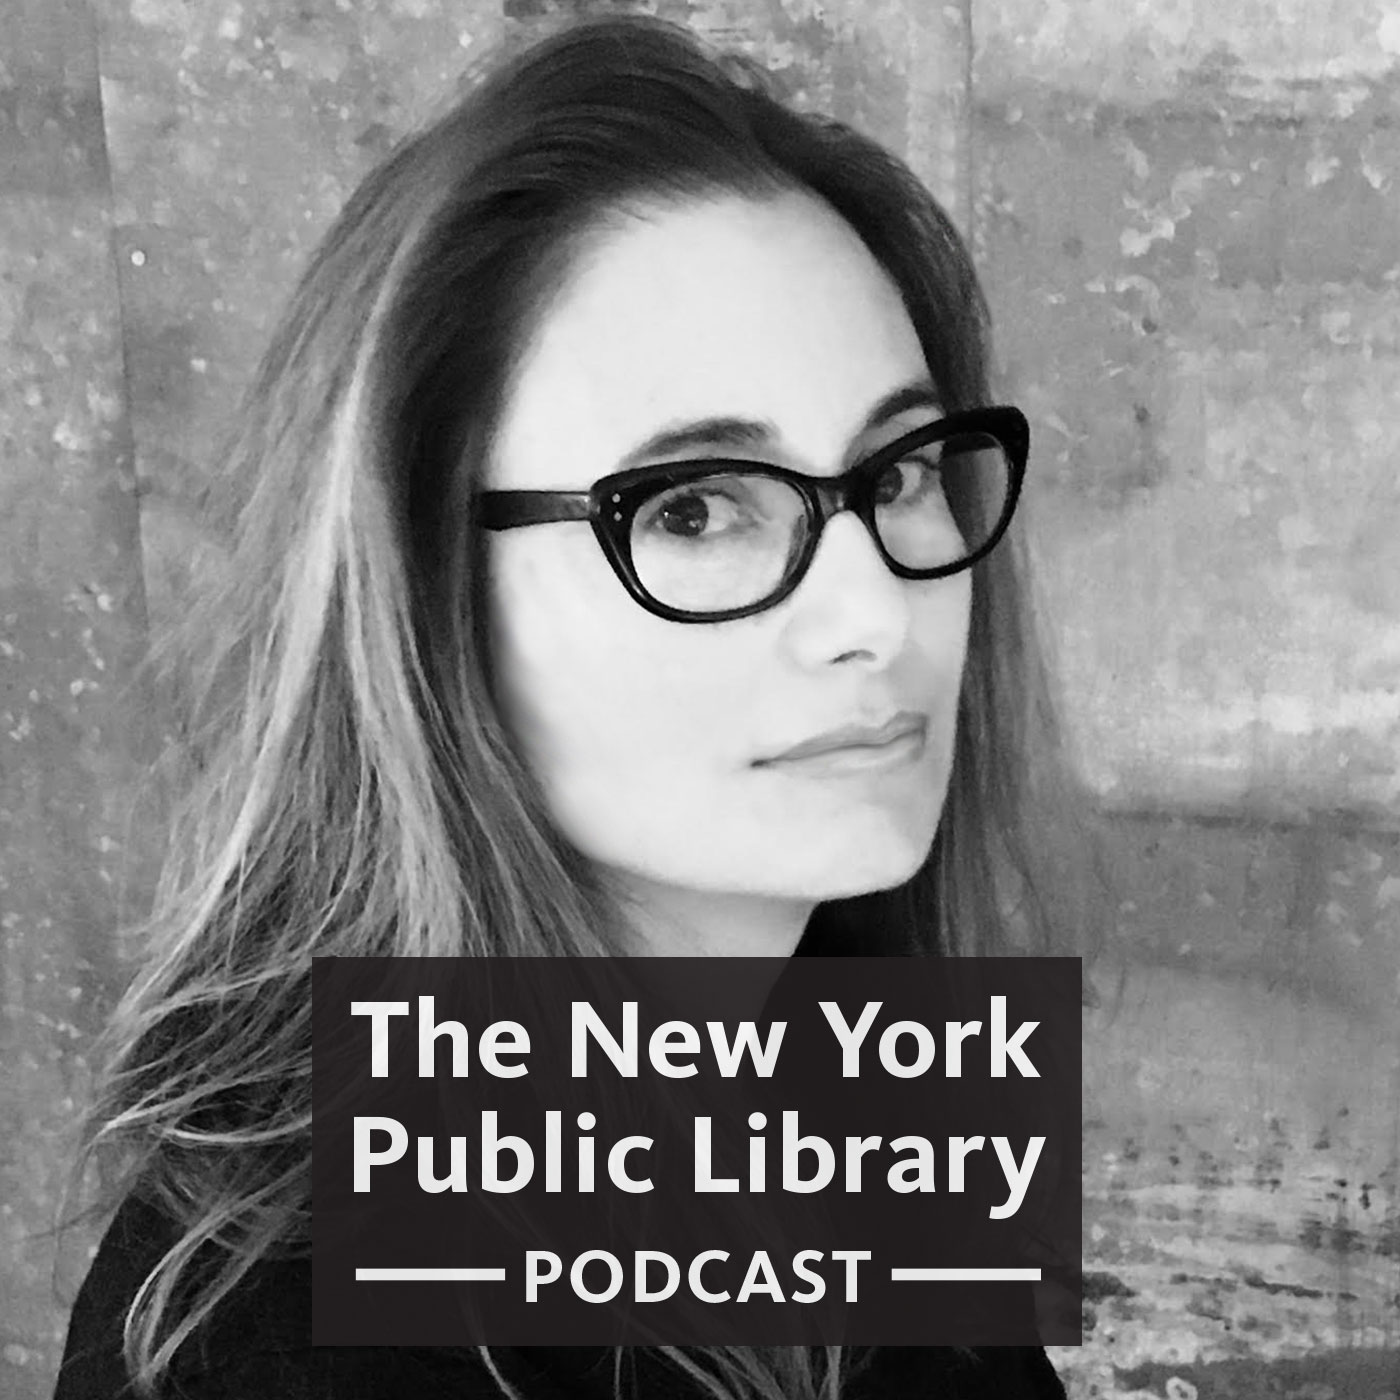 Dana Spiotta on Good People, Heroes, & Writing